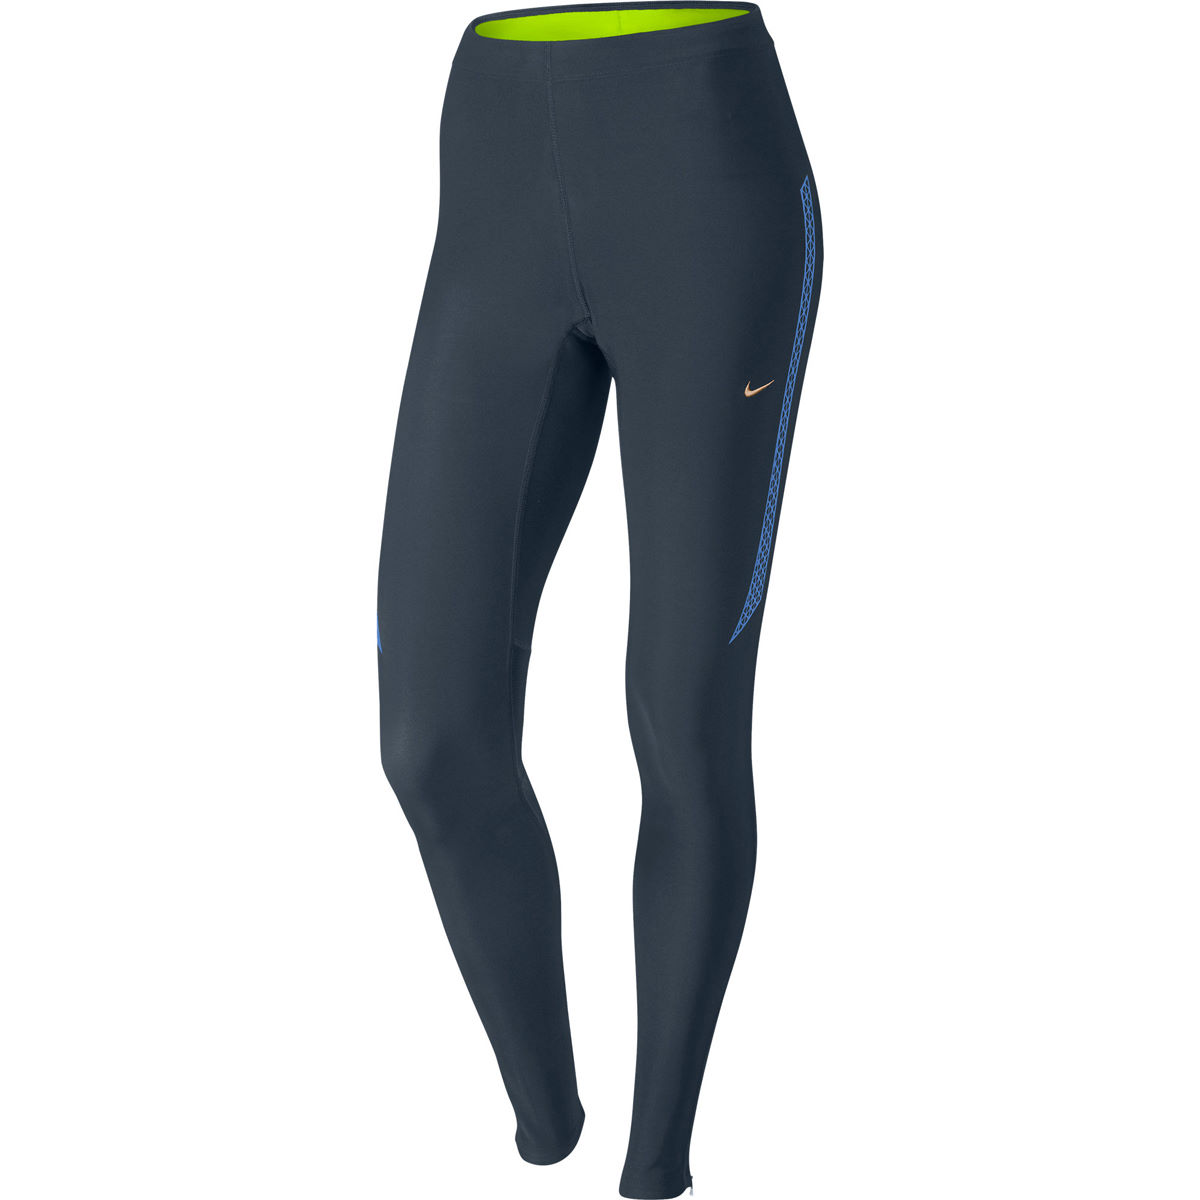 wiggle nike ladies tech 2 tight fa13 running tights. Black Bedroom Furniture Sets. Home Design Ideas